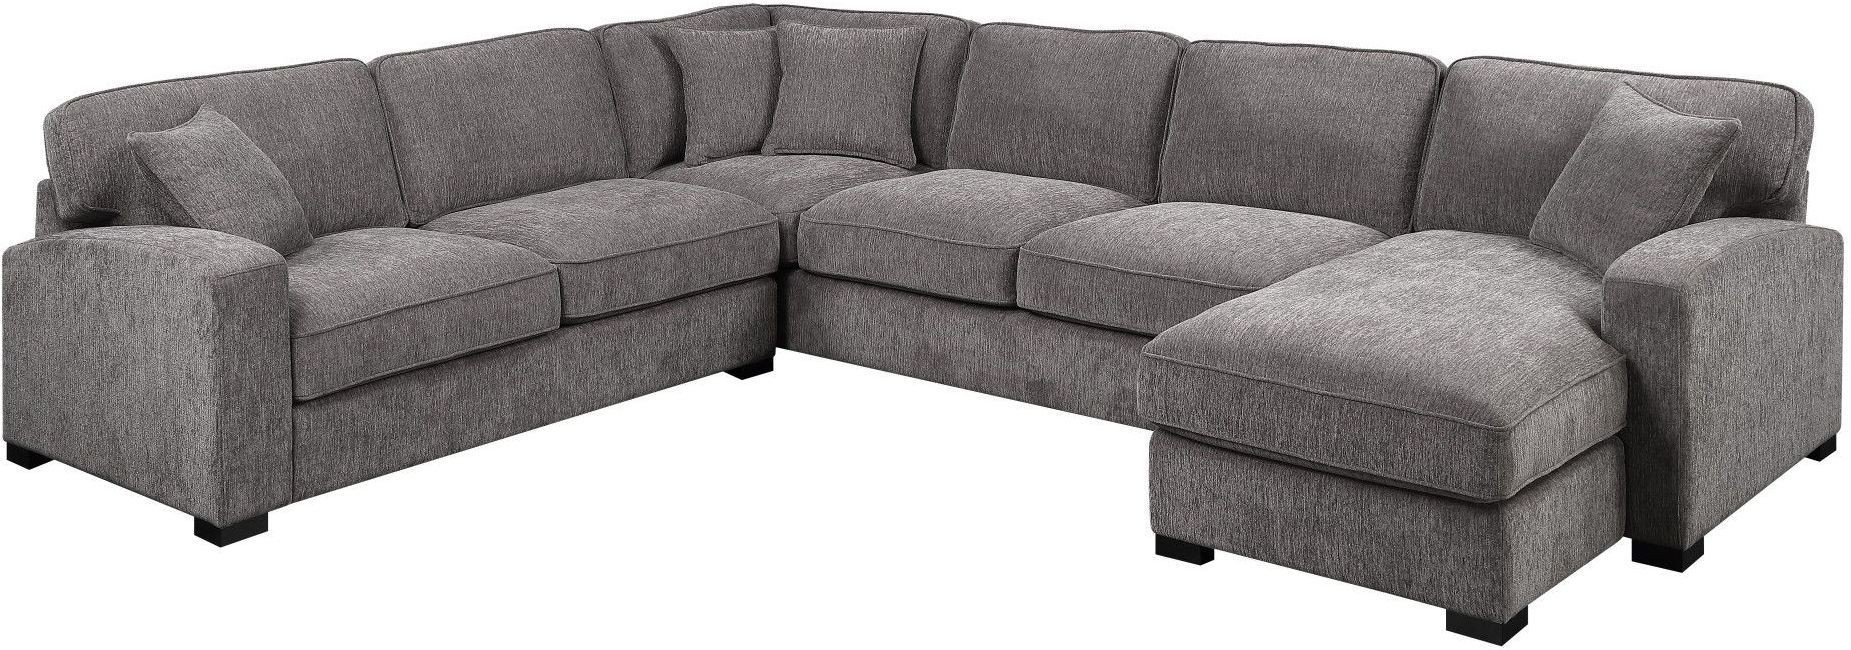 Repose Charcoal 3 Piece Sectional From Emerald Home | Coleman Furniture throughout Harper Foam 3 Piece Sectionals With Raf Chaise (Image 18 of 30)